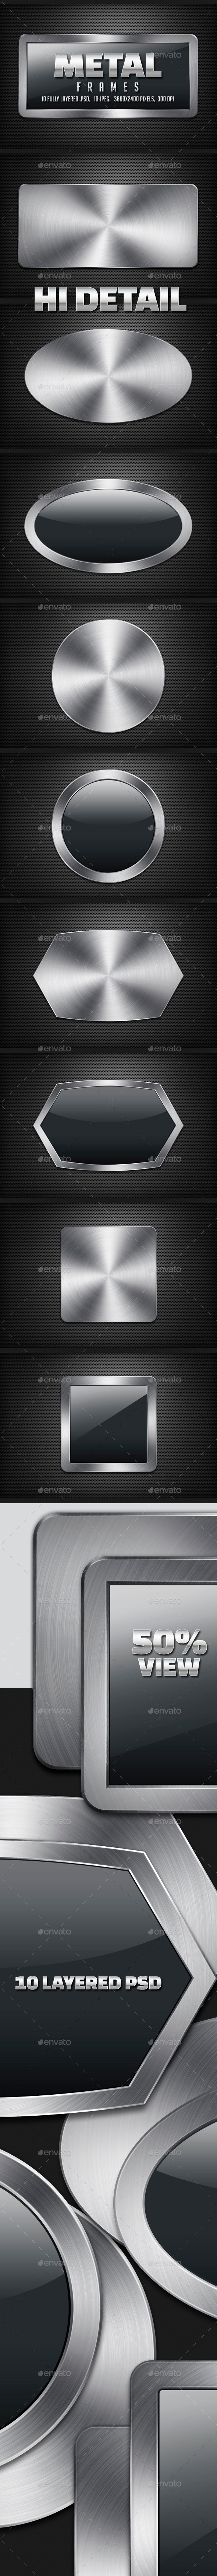 Metal Frames - Backgrounds Graphics